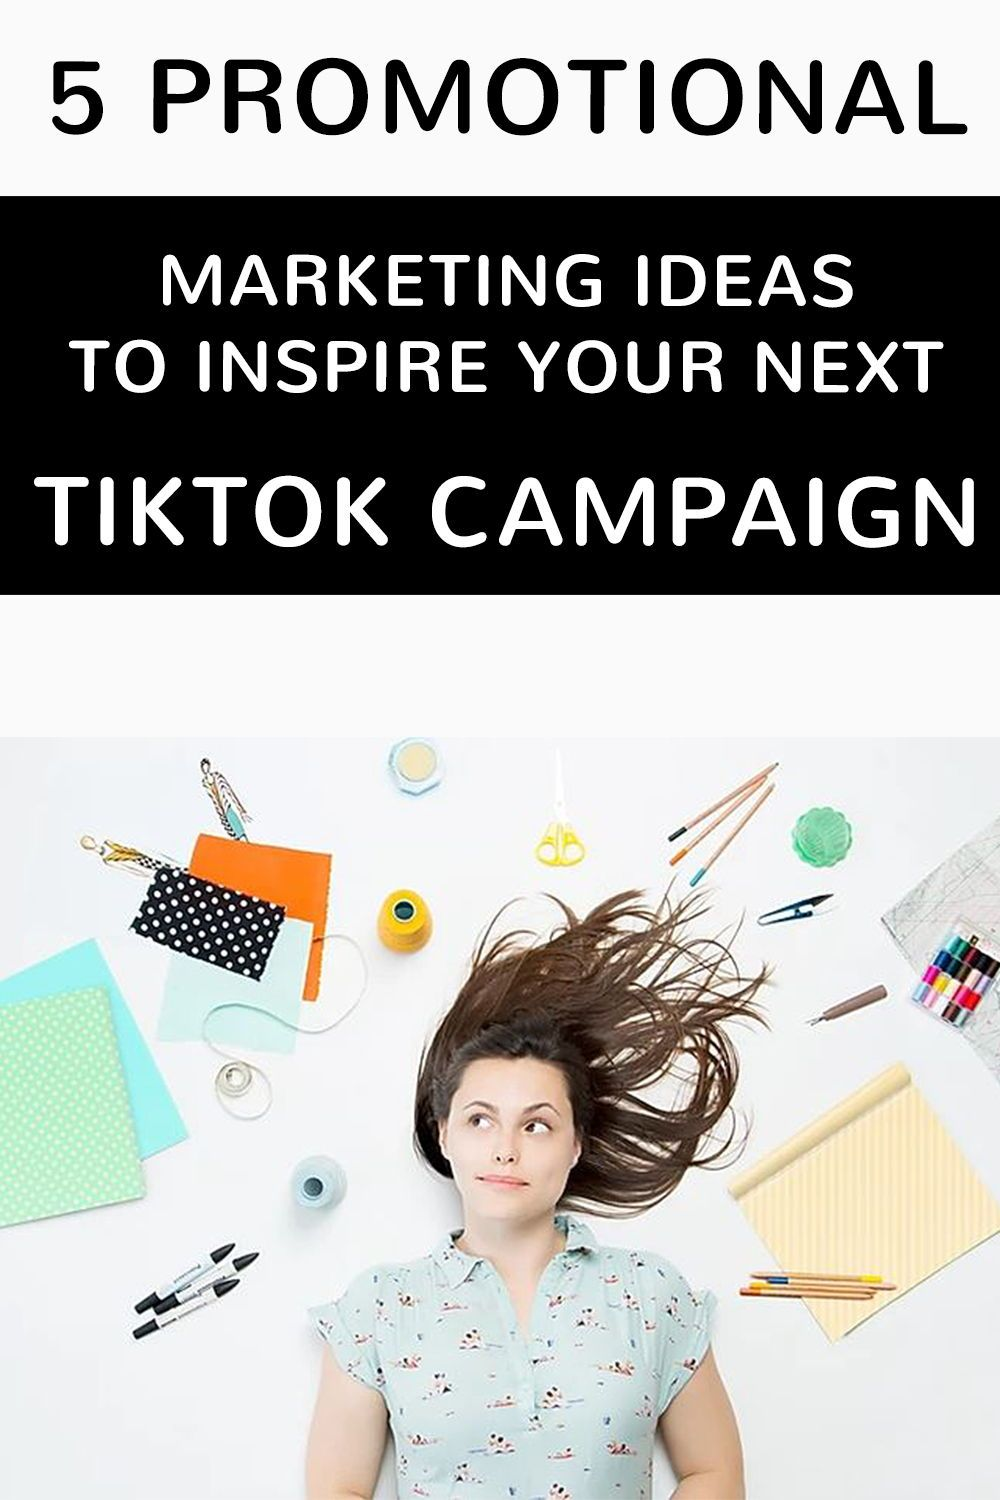 5 Promotional Marketing Ideas To Inspire Your Next Tiktok Campaign Promotional Products Marketing Sales And Marketing Blog Marketing